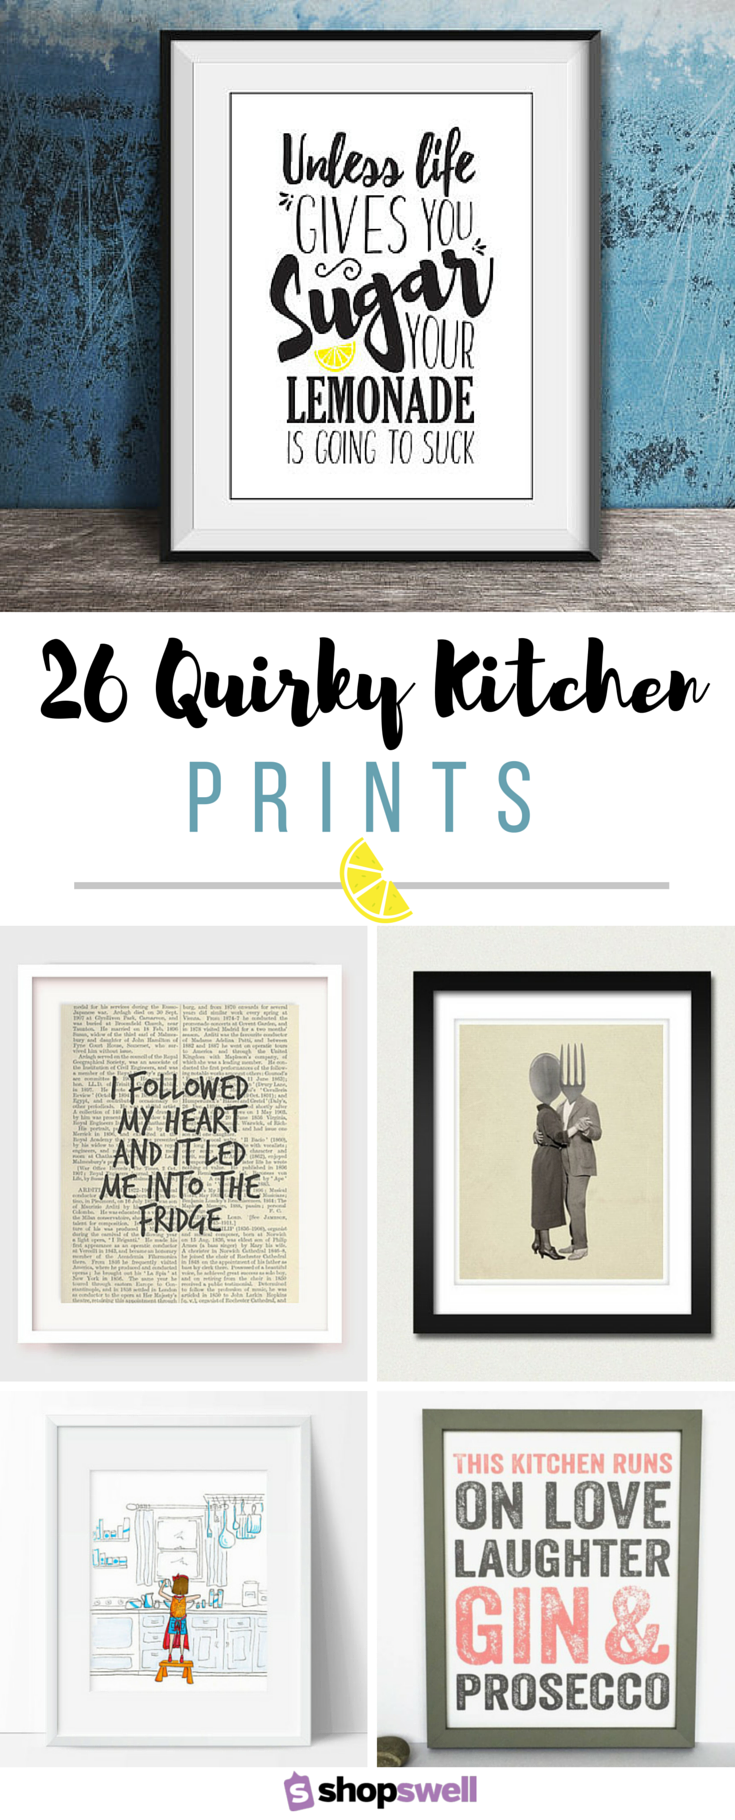 Quirky Kitchen Art & Decor in 2019 | Quirky kitchen, Quirky ...